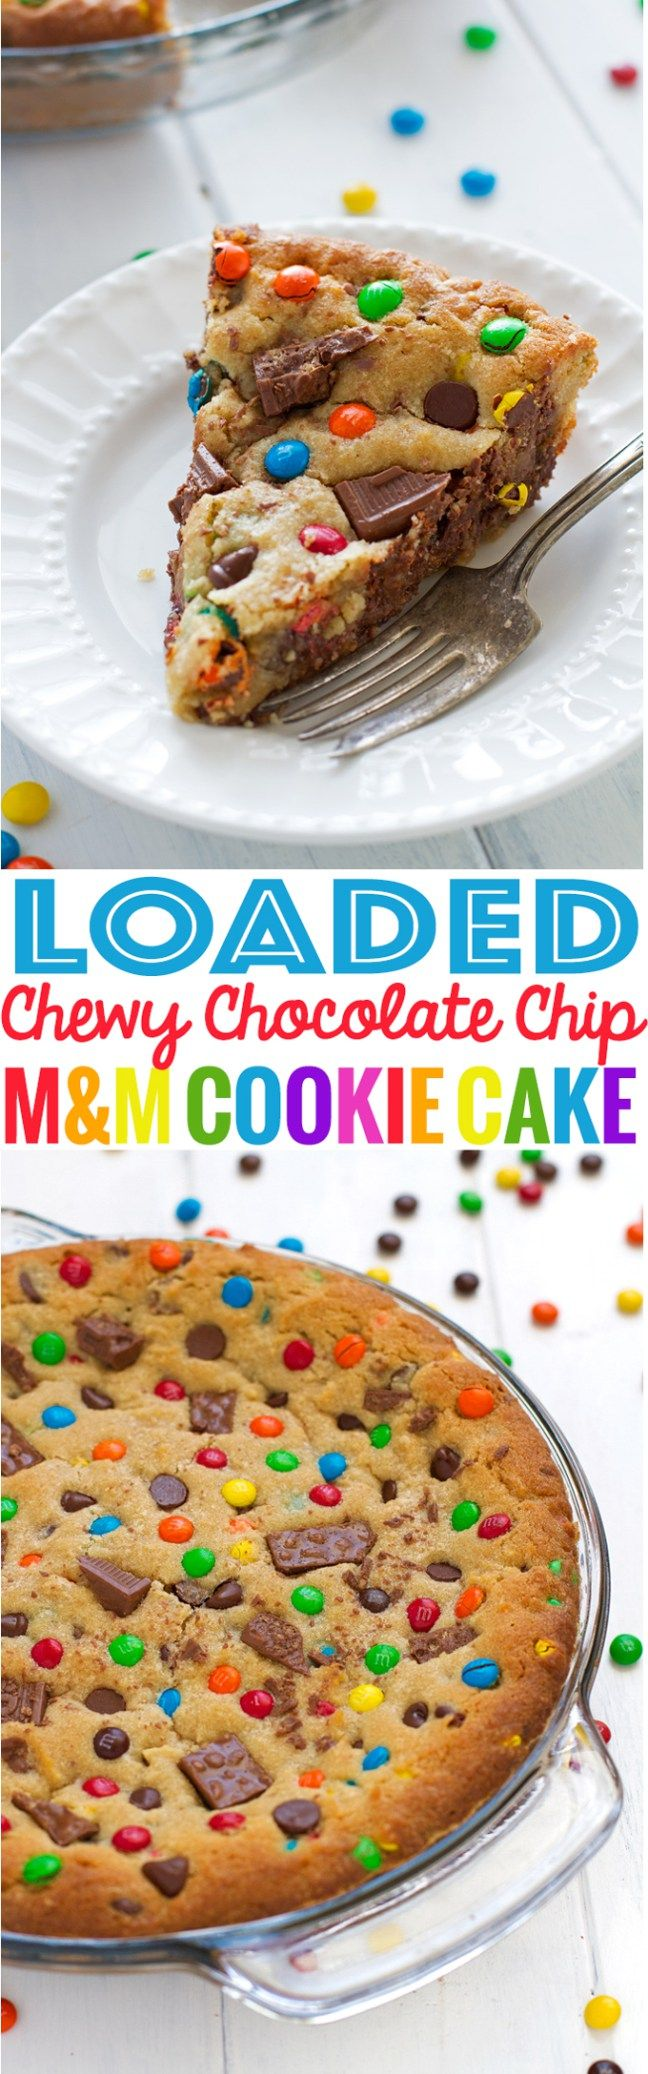 Loaded Chewy Chocolate Chip M&M Cookie Cake #cookiecake #cookie #cake #chewychocolatechipcookie | Little Spice Jar